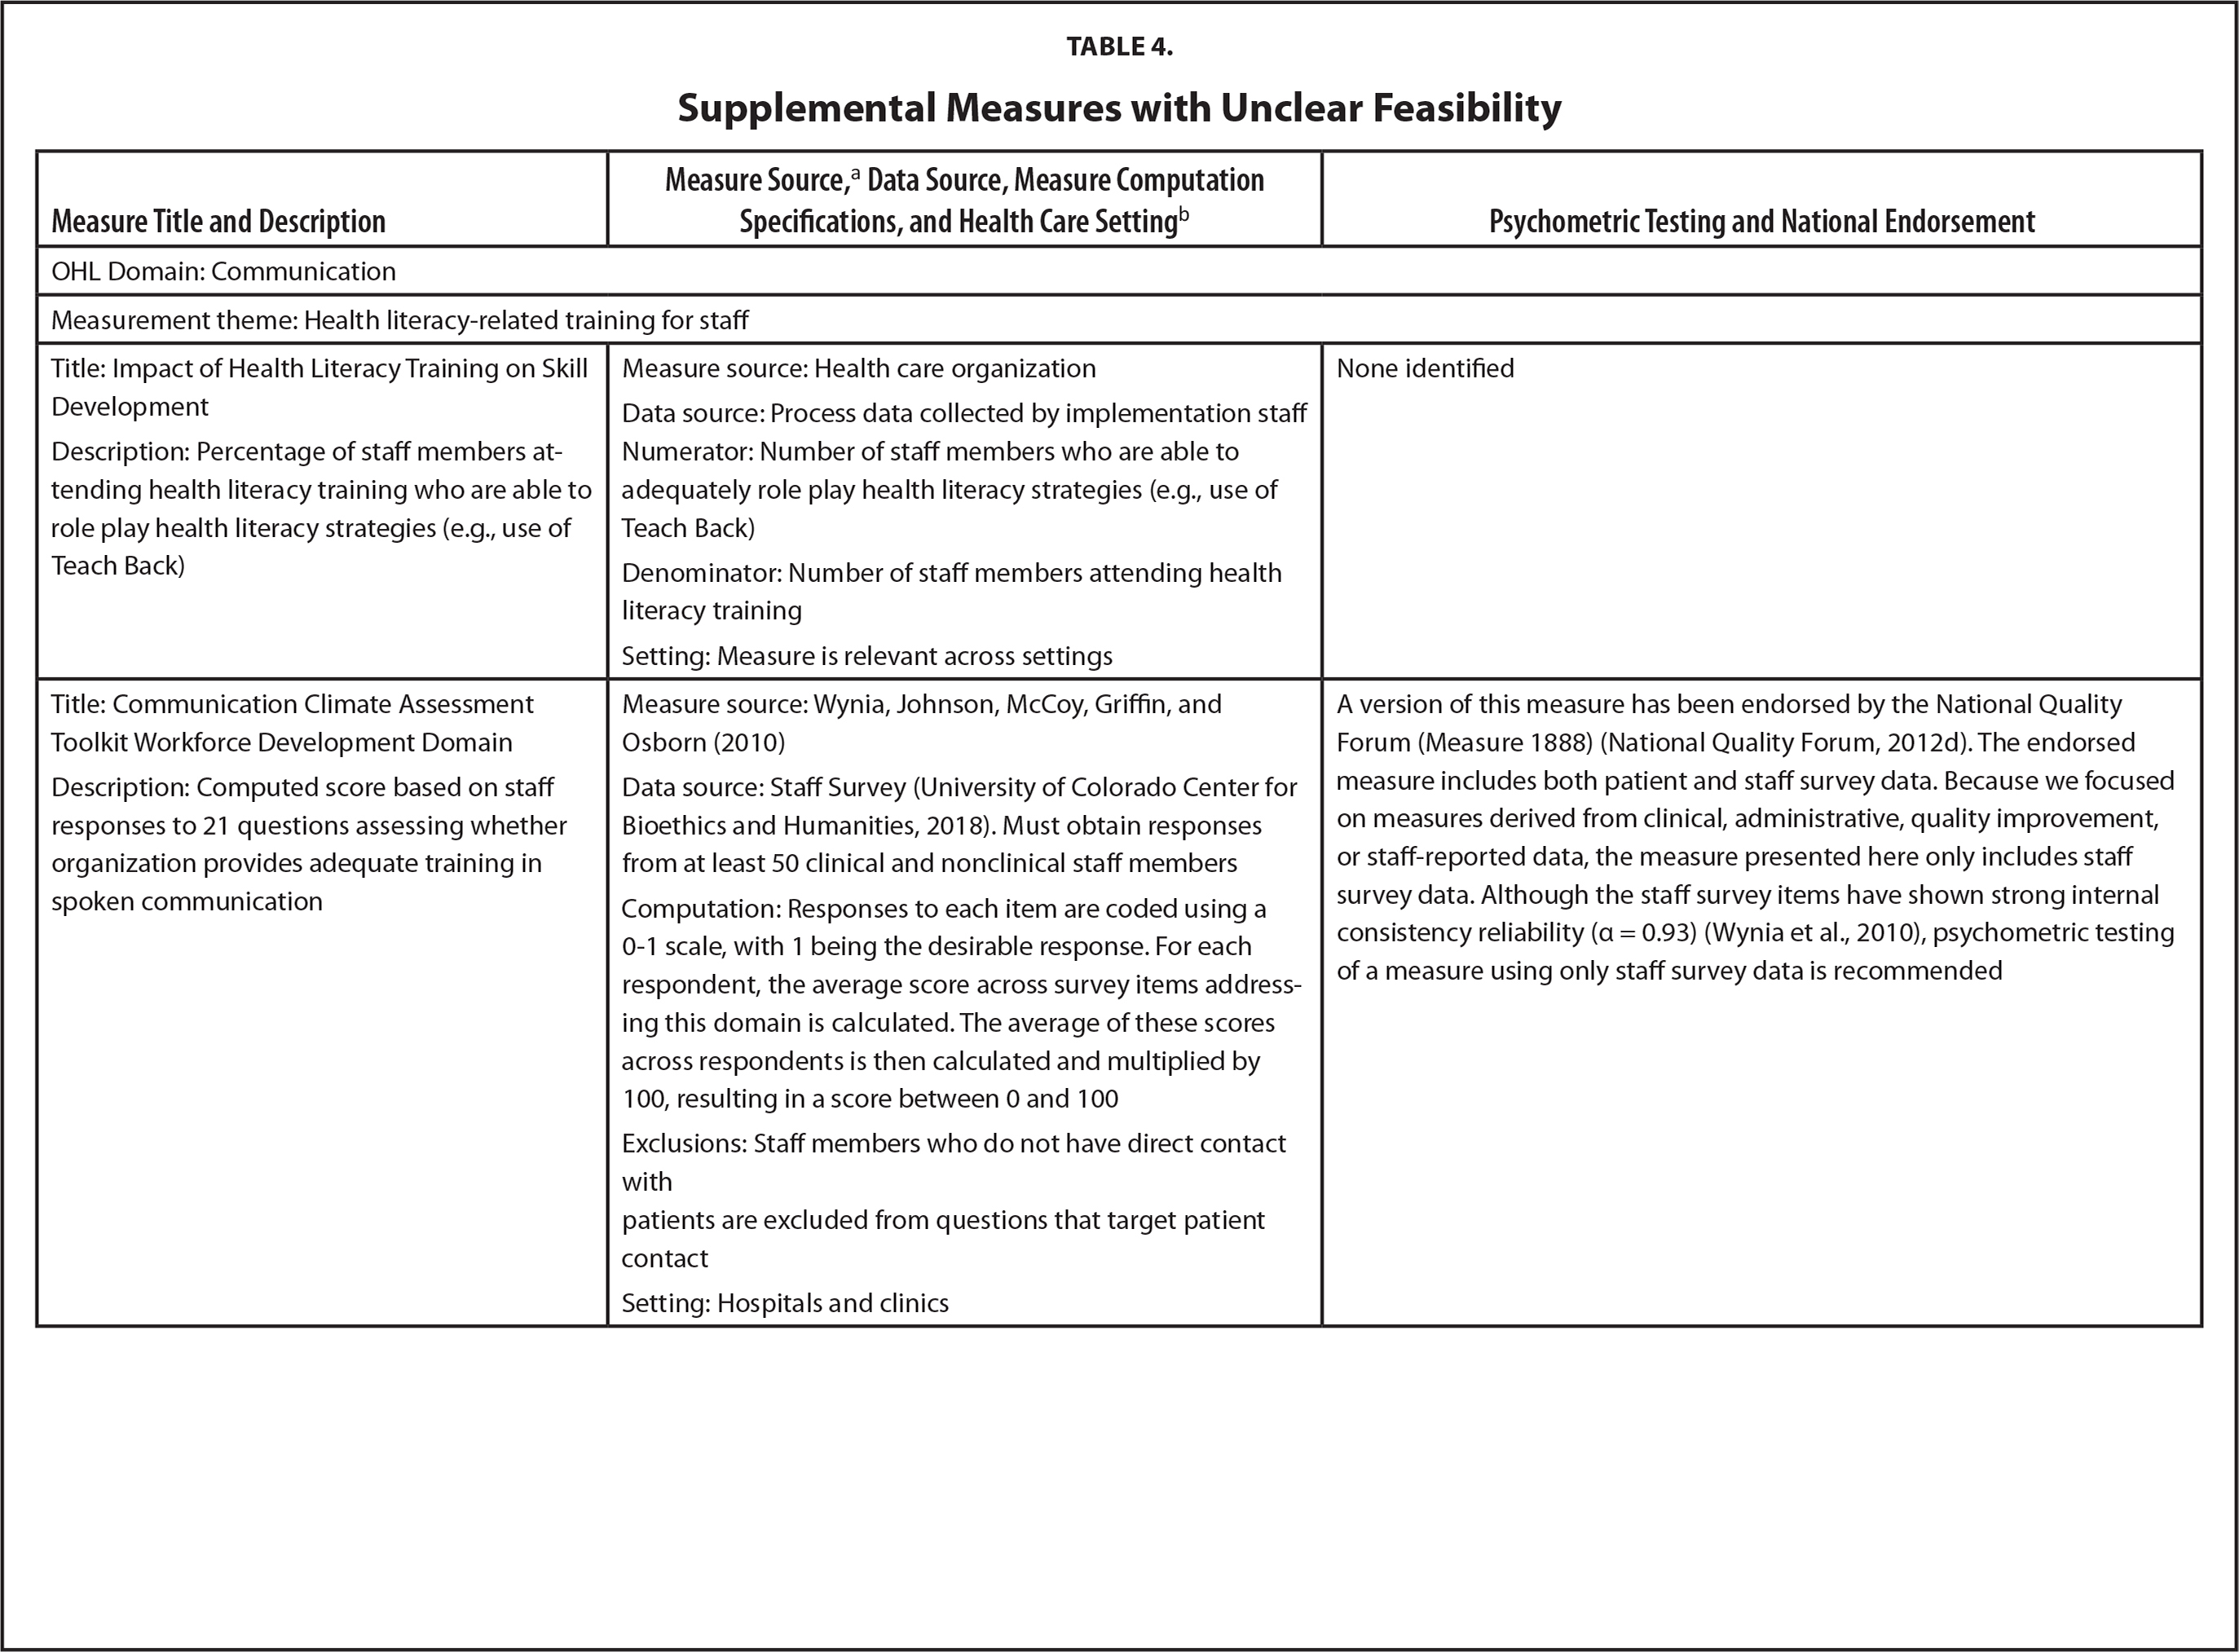 Supplemental Measures with Unclear Feasibility